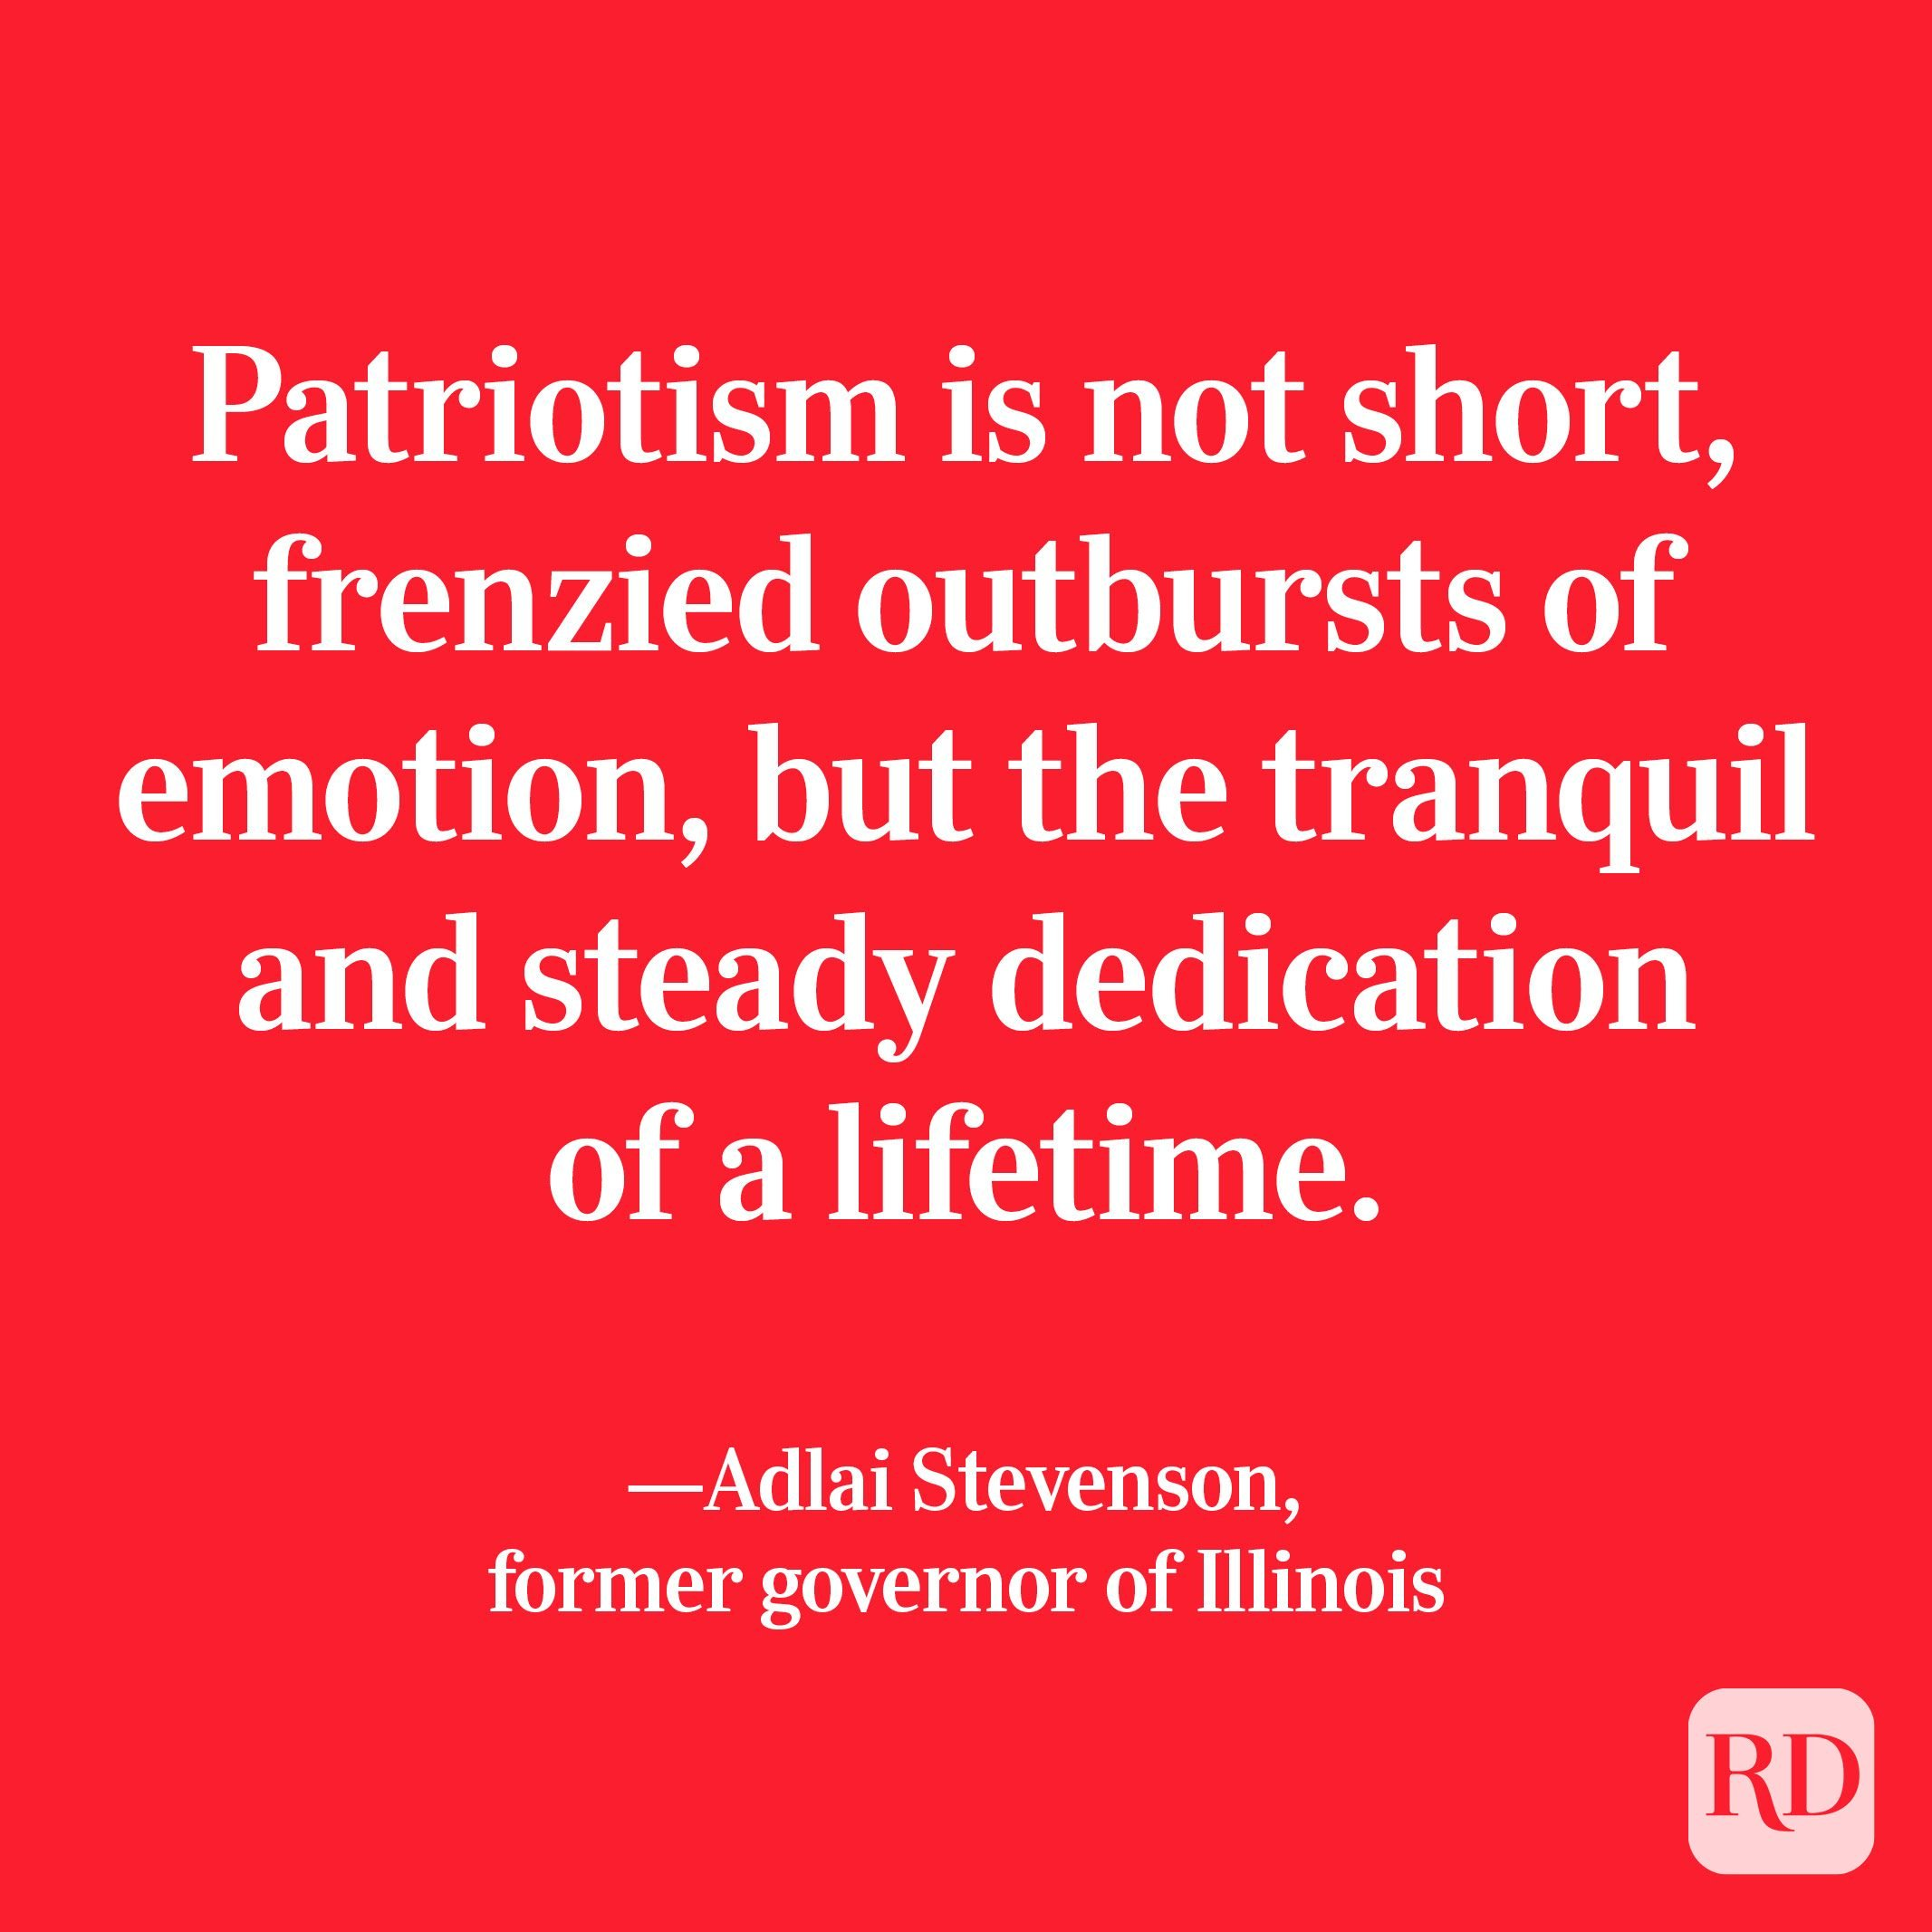 """""""Patriotism is not short, frenzied outbursts of emotion, but the tranquil and steady dedication of a lifetime."""" —Adlai Stevenson, former governor of Illinois."""